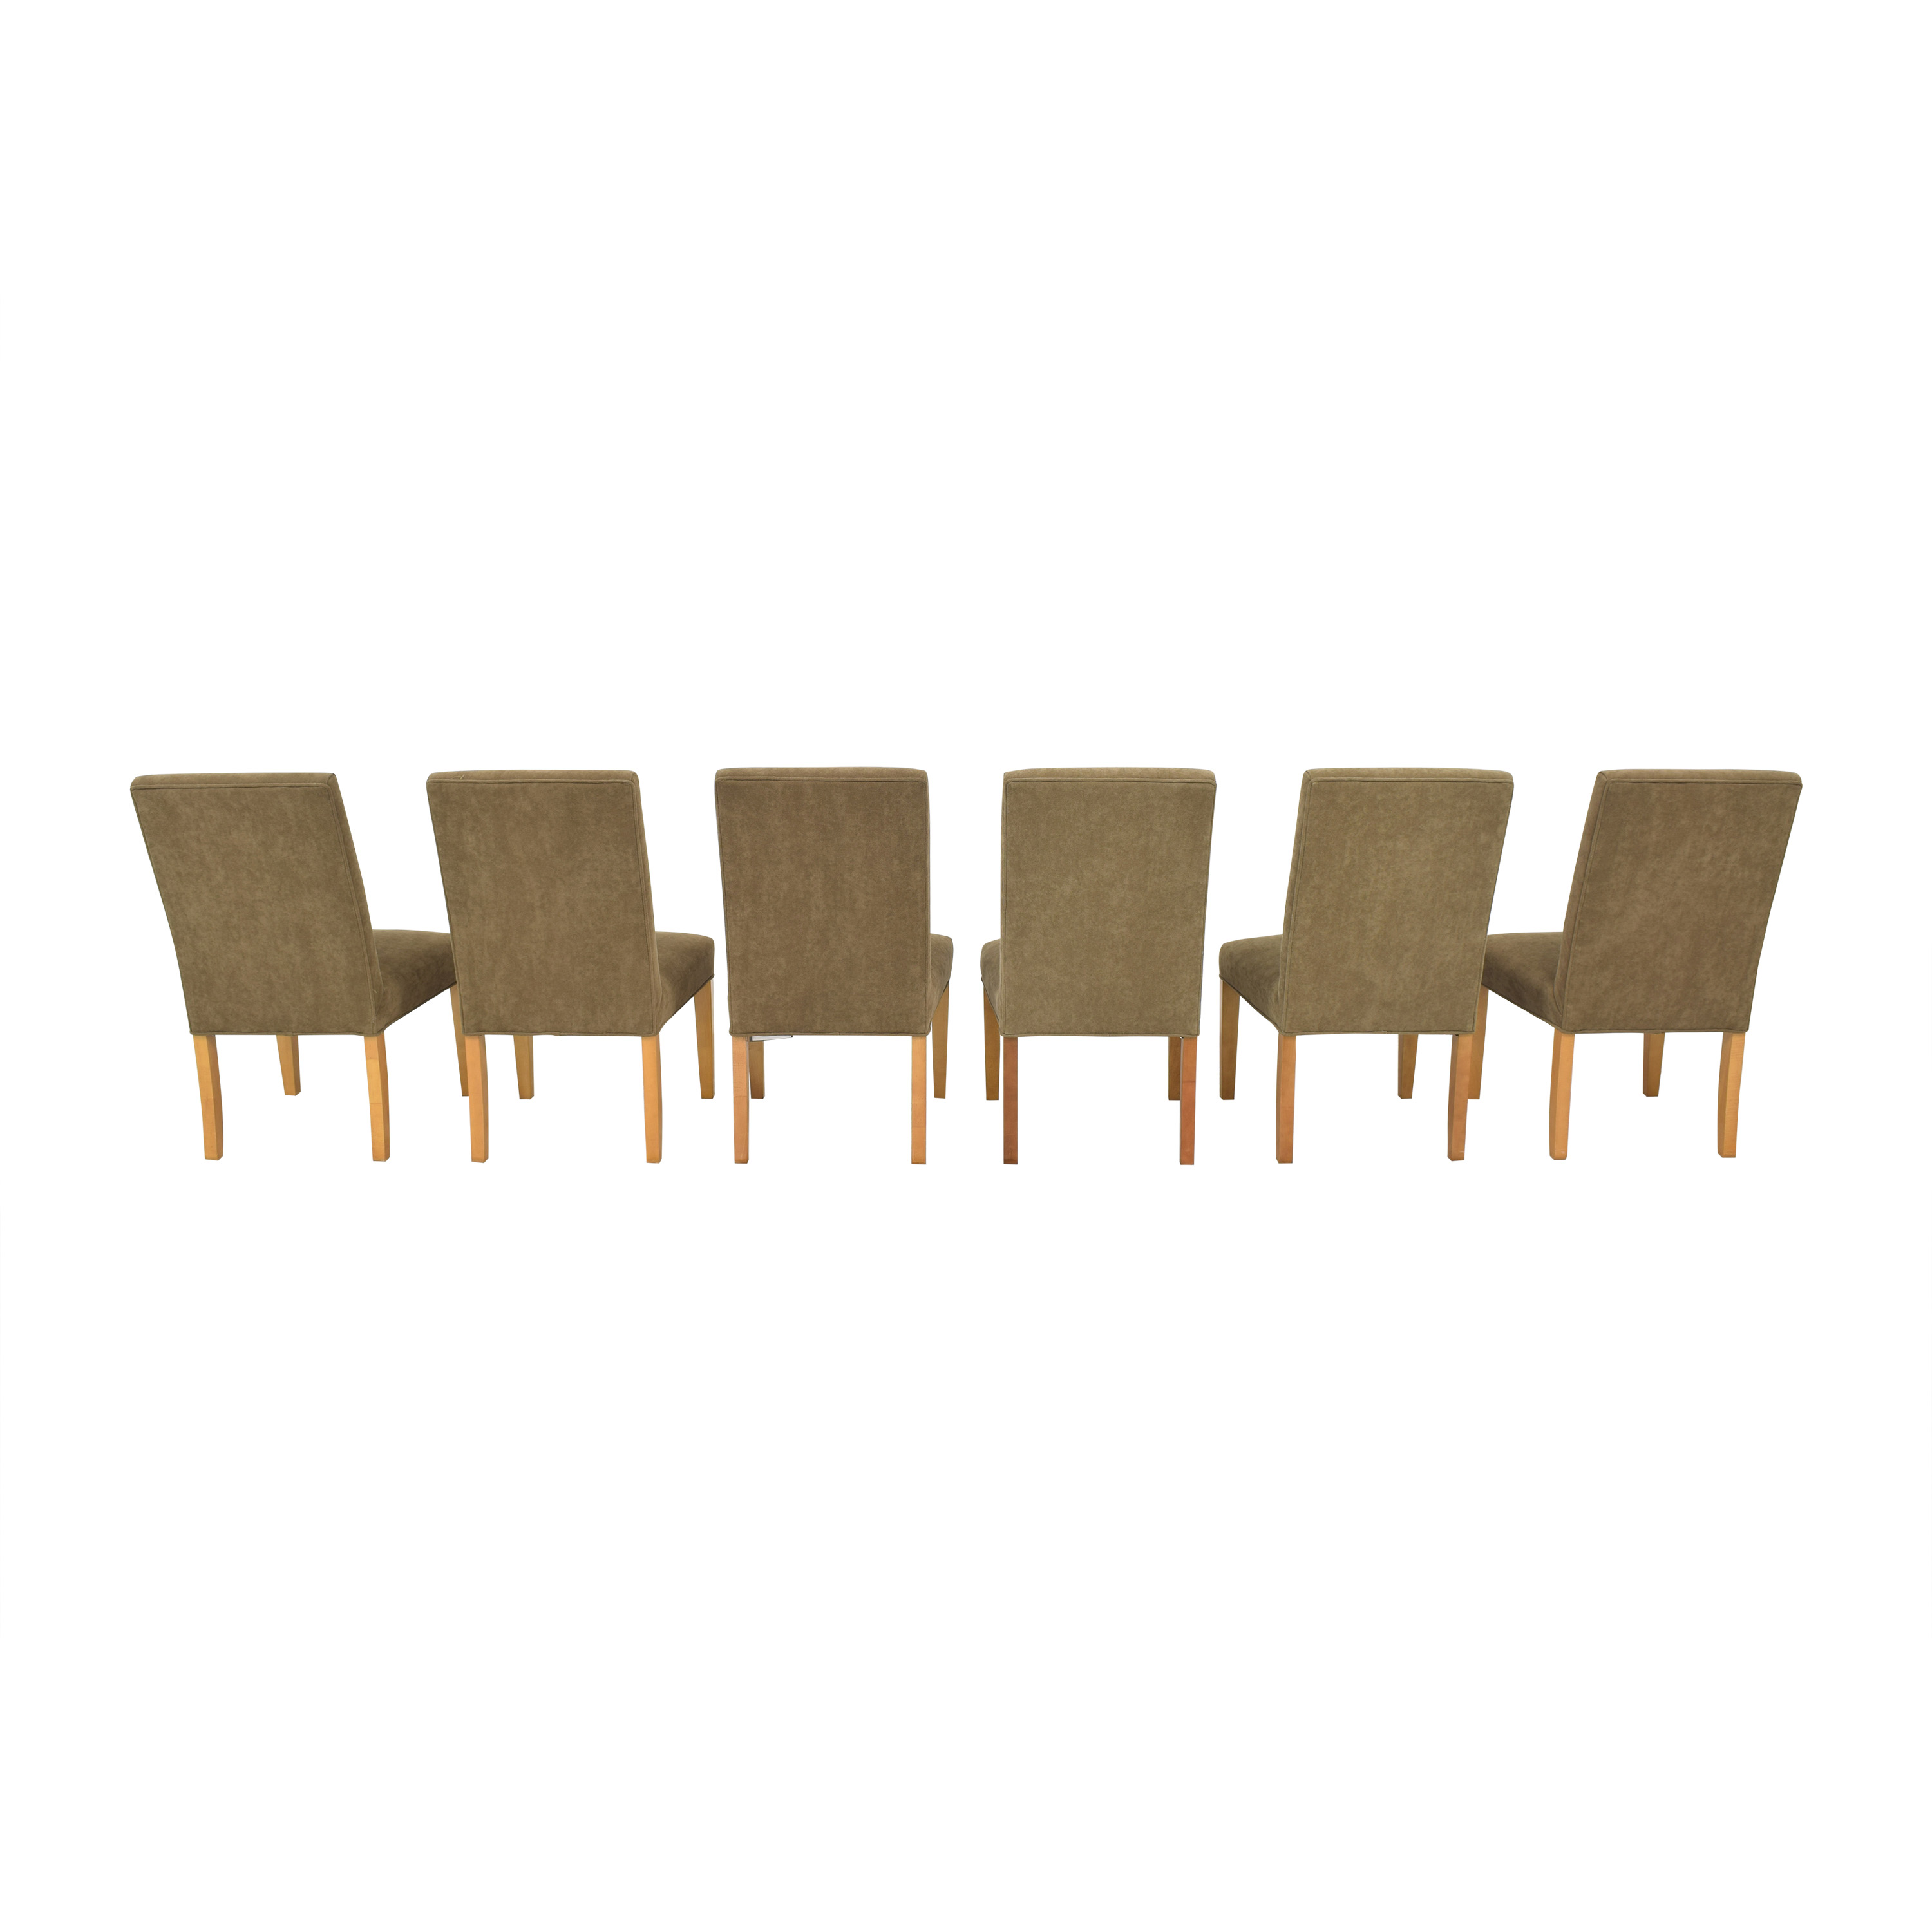 Crate & Barrel Crate & Barrel Miles Dining Chairs second hand